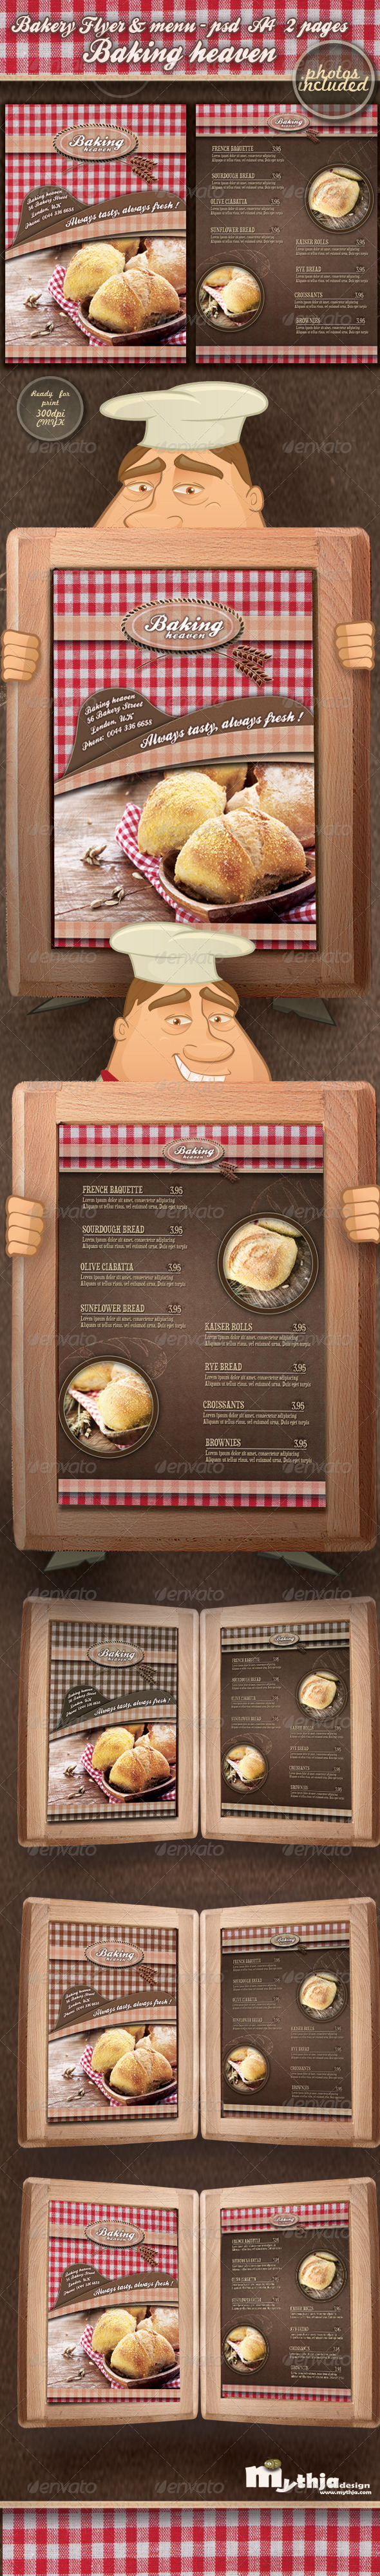 Bakery Flyer & Menu Template (Photos Included) - Food Menus Print Templates